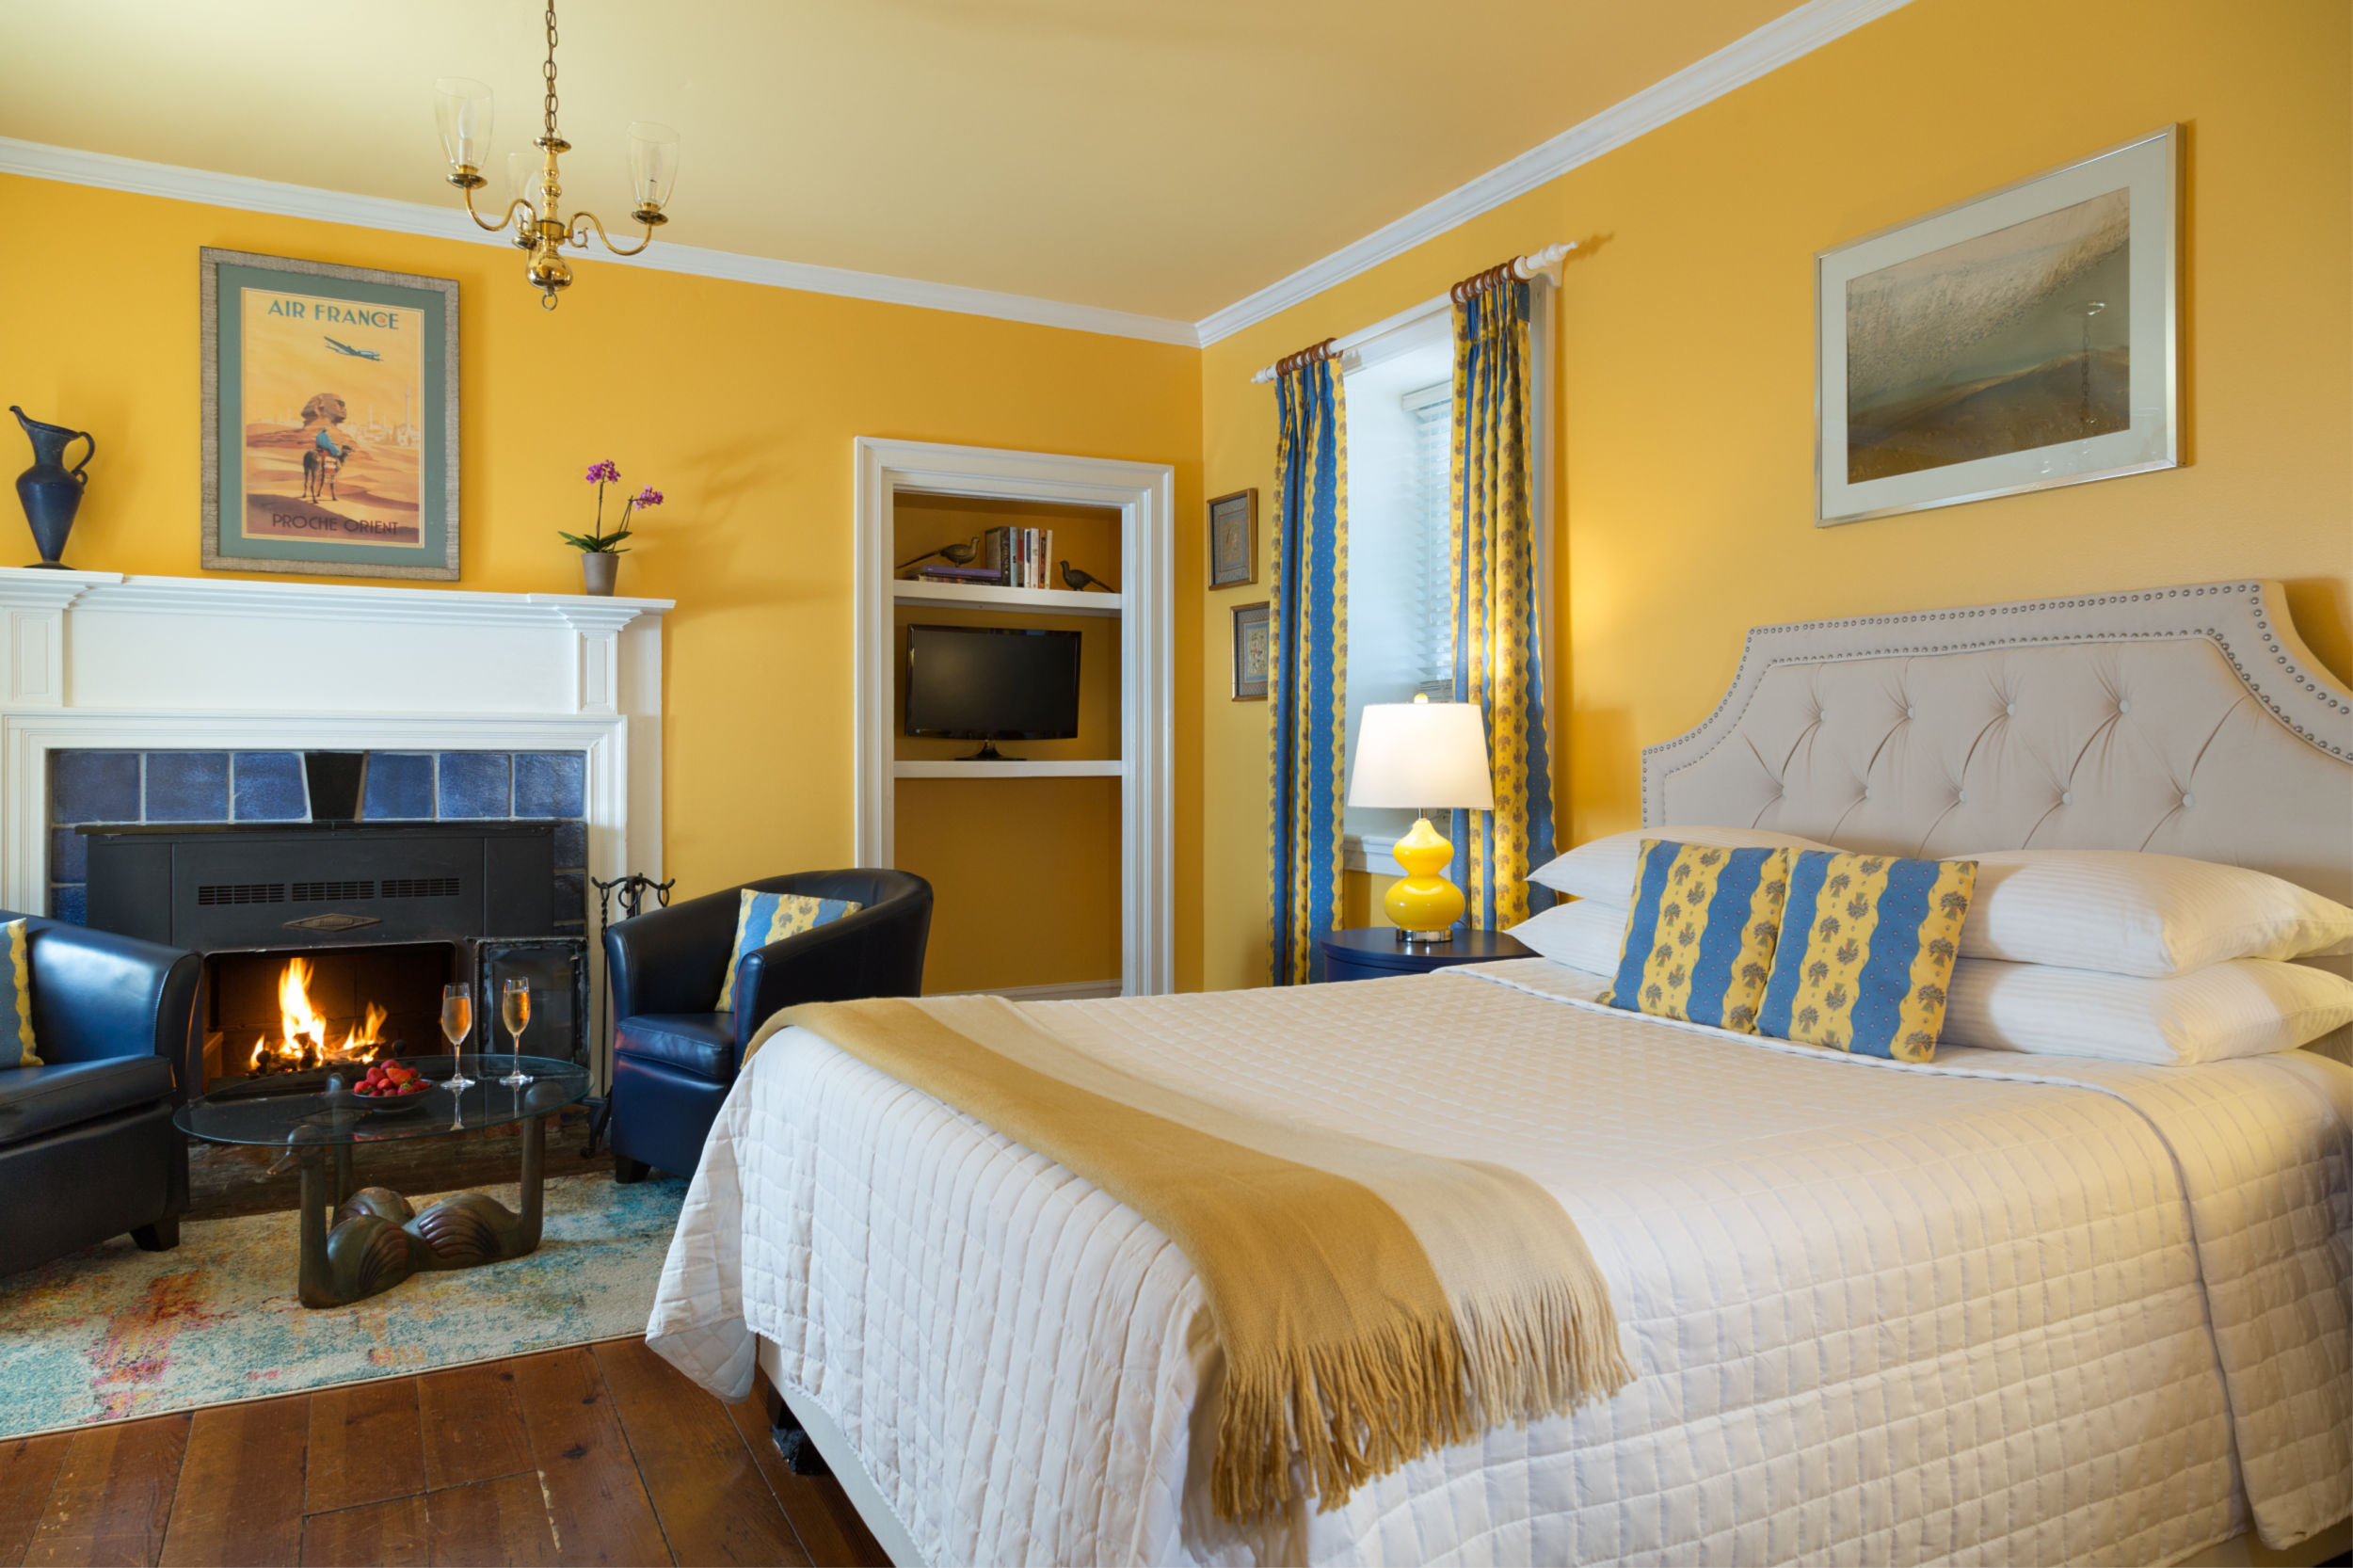 Lauberge Provencale B&B beautiful bright yellow room